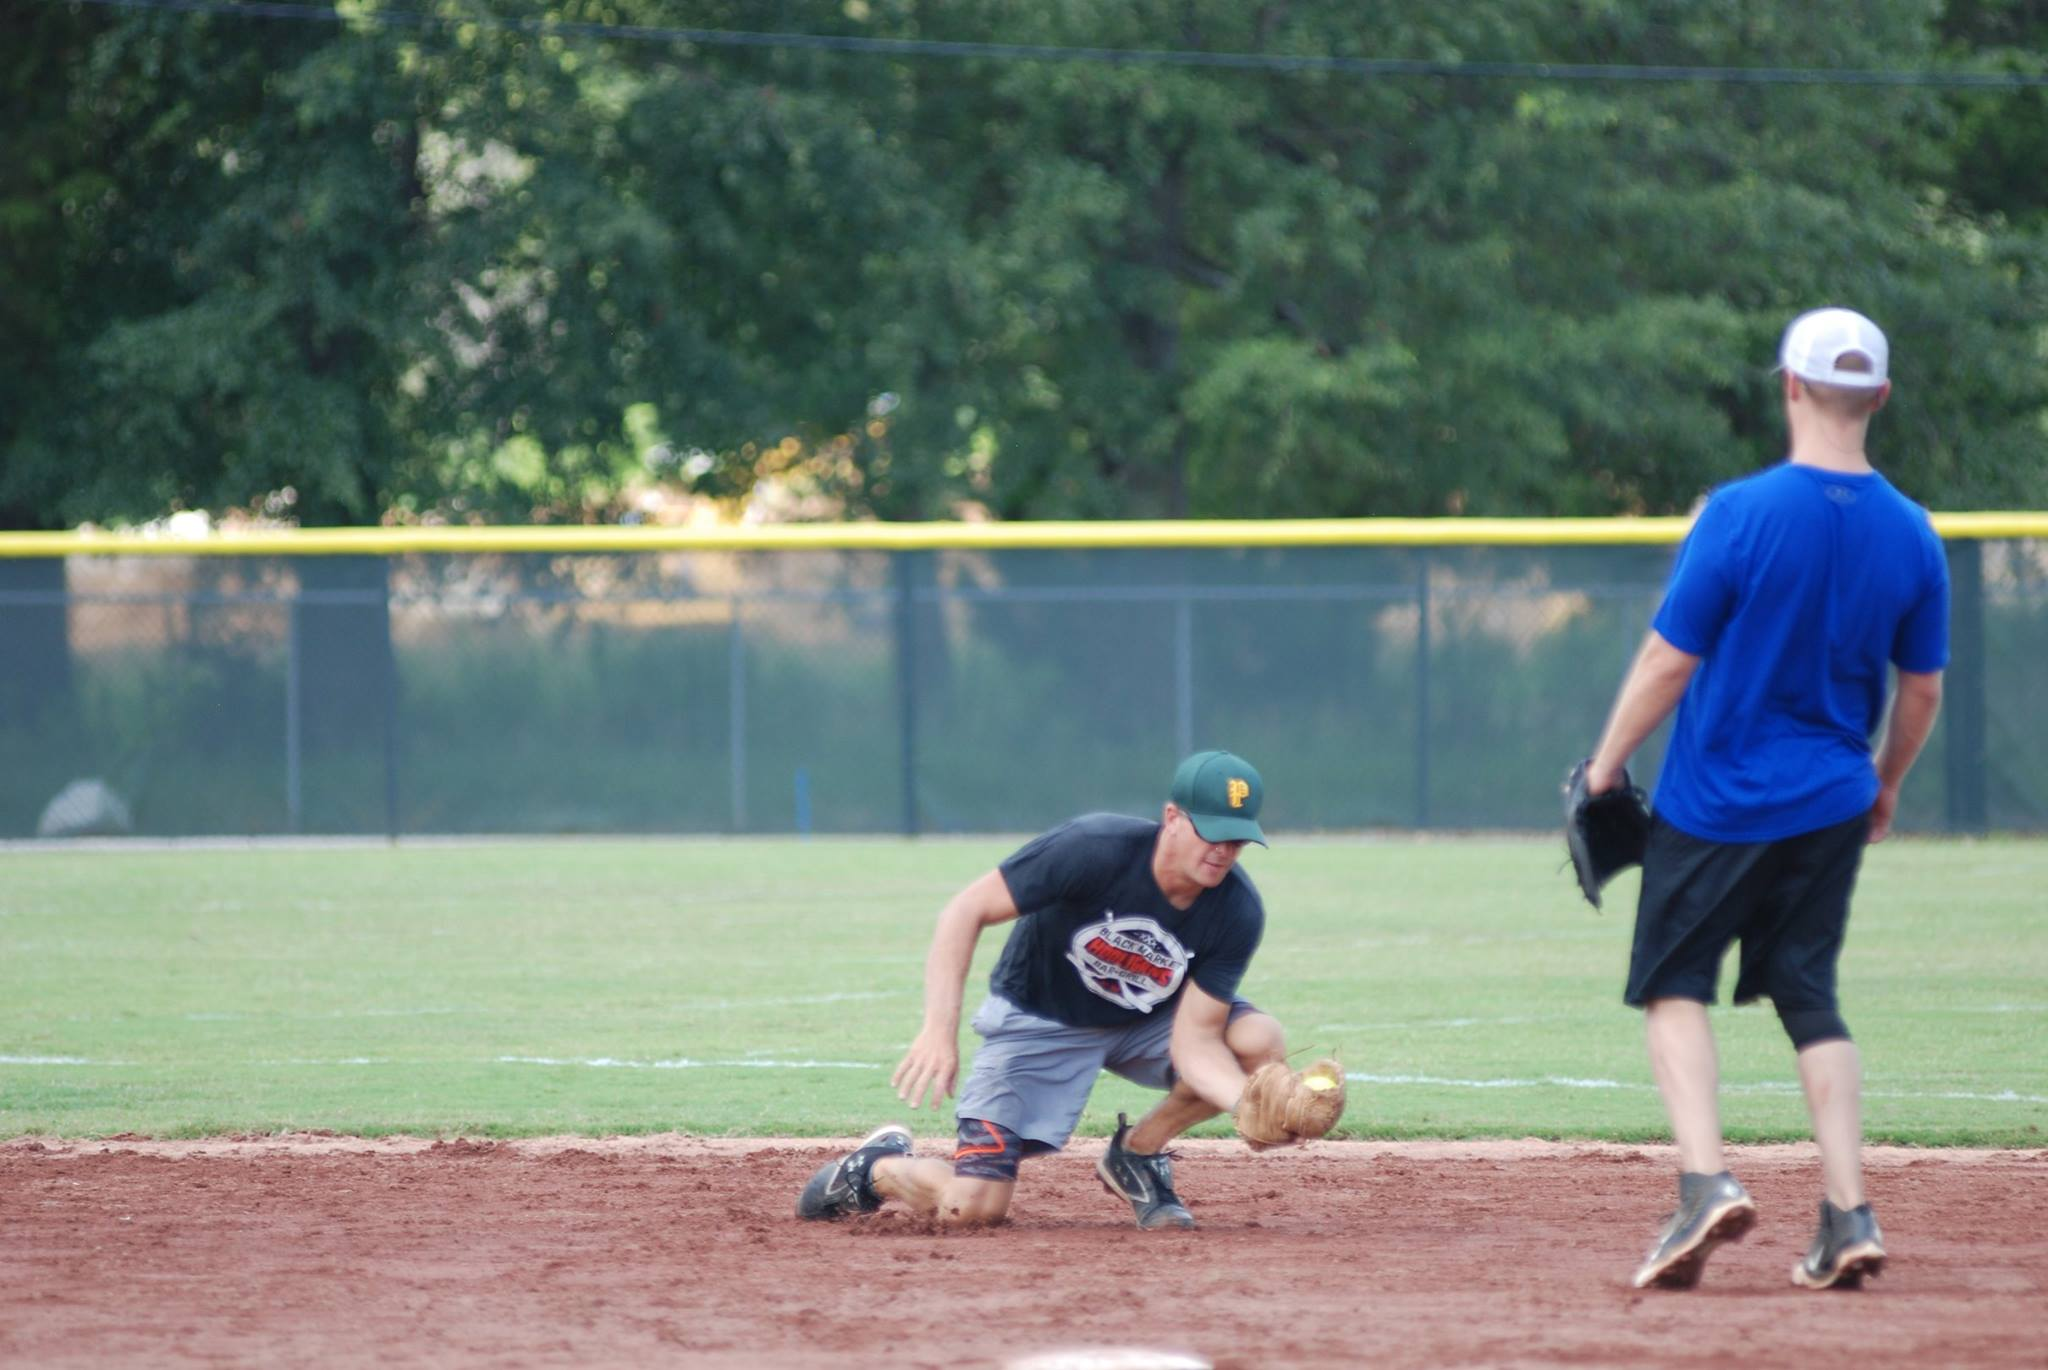 Jason Aldean and crew made their way to Pelham to play a few friendly games of softball against Pelham PD.  (Courtesy Pelham Police Department)